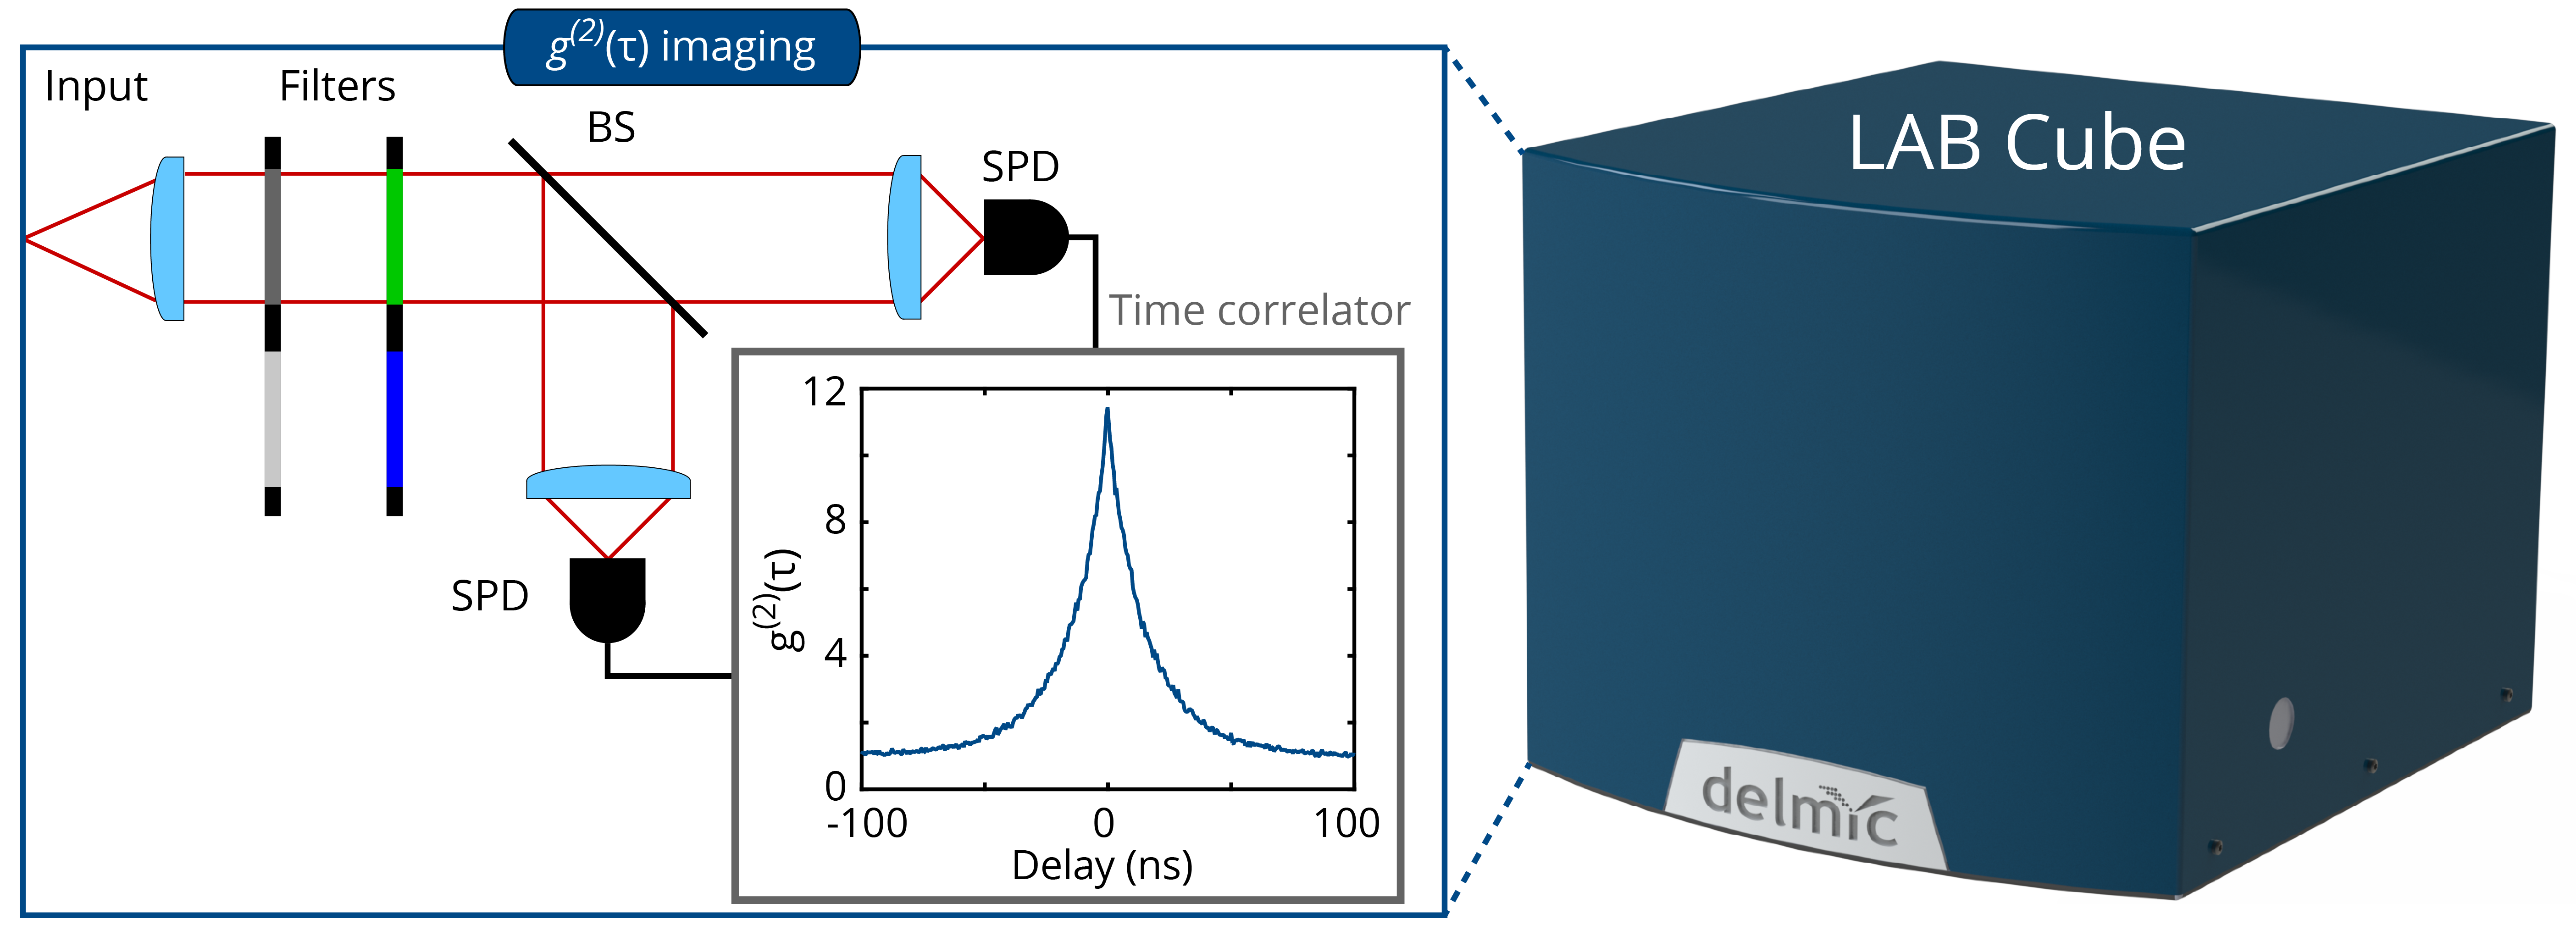 Cathodoluminescence g(2) imaging: technical note on the SPARC new imaging mode